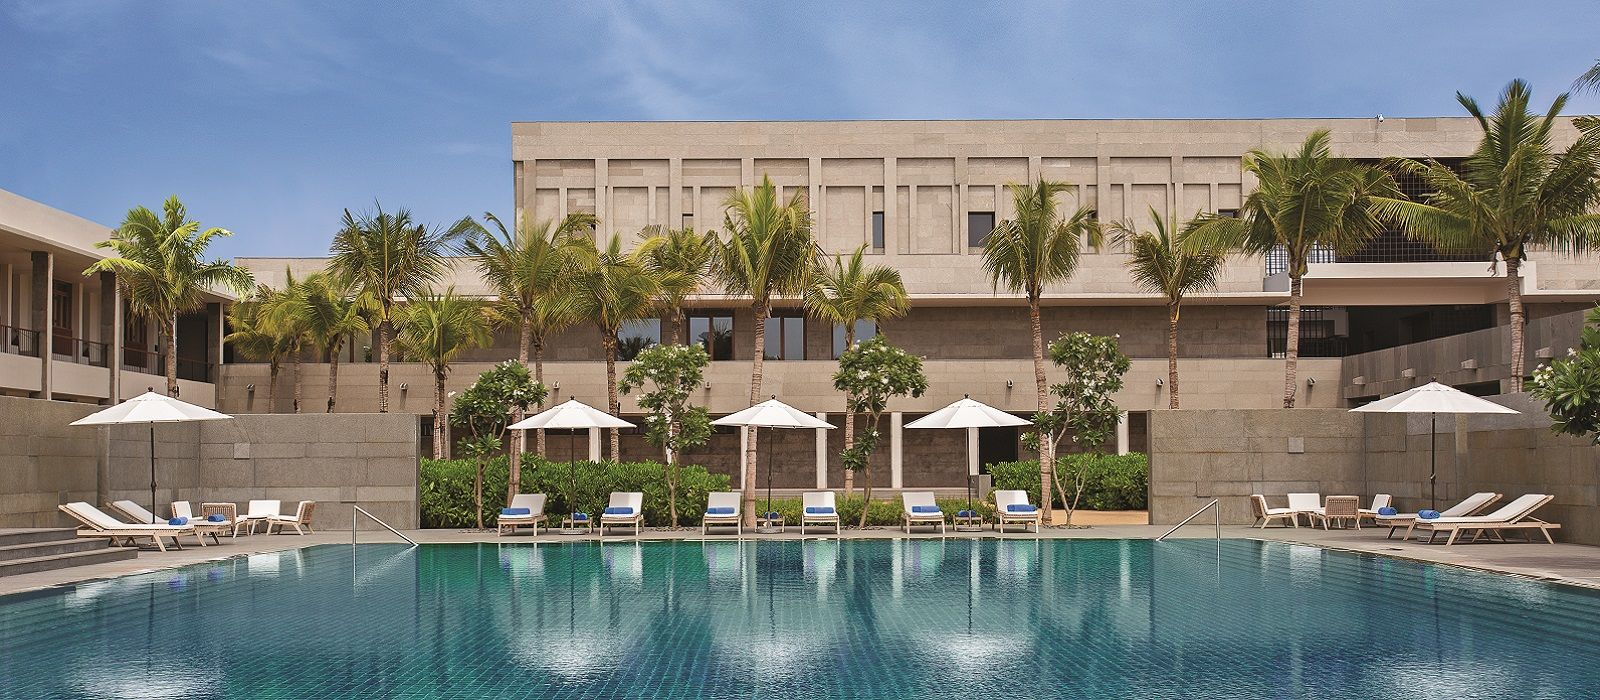 Hotel InterContinental Chennai Mahabalipuram Resort South India